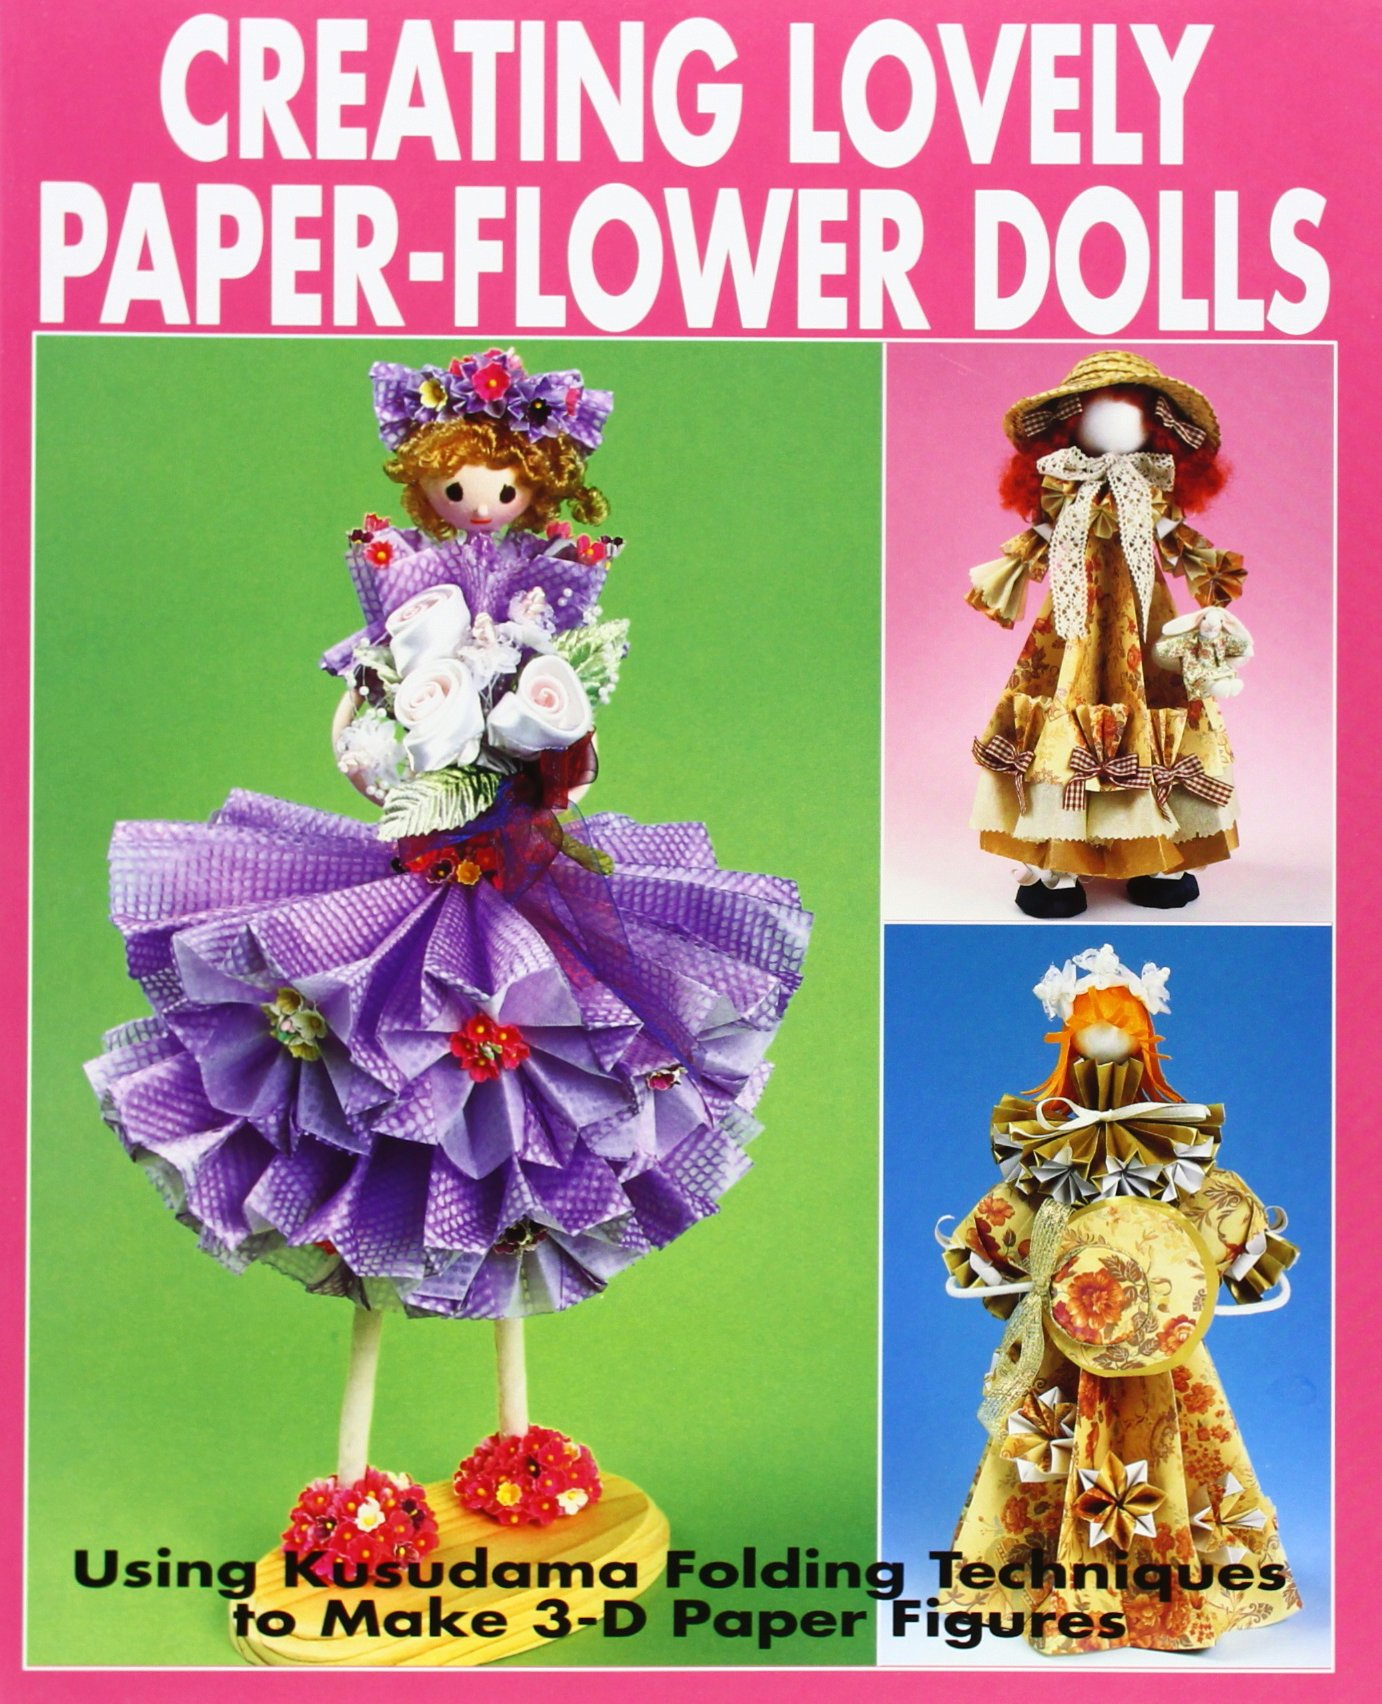 Creating Lovely Paper Flower Dolls Using Kusudama Folding